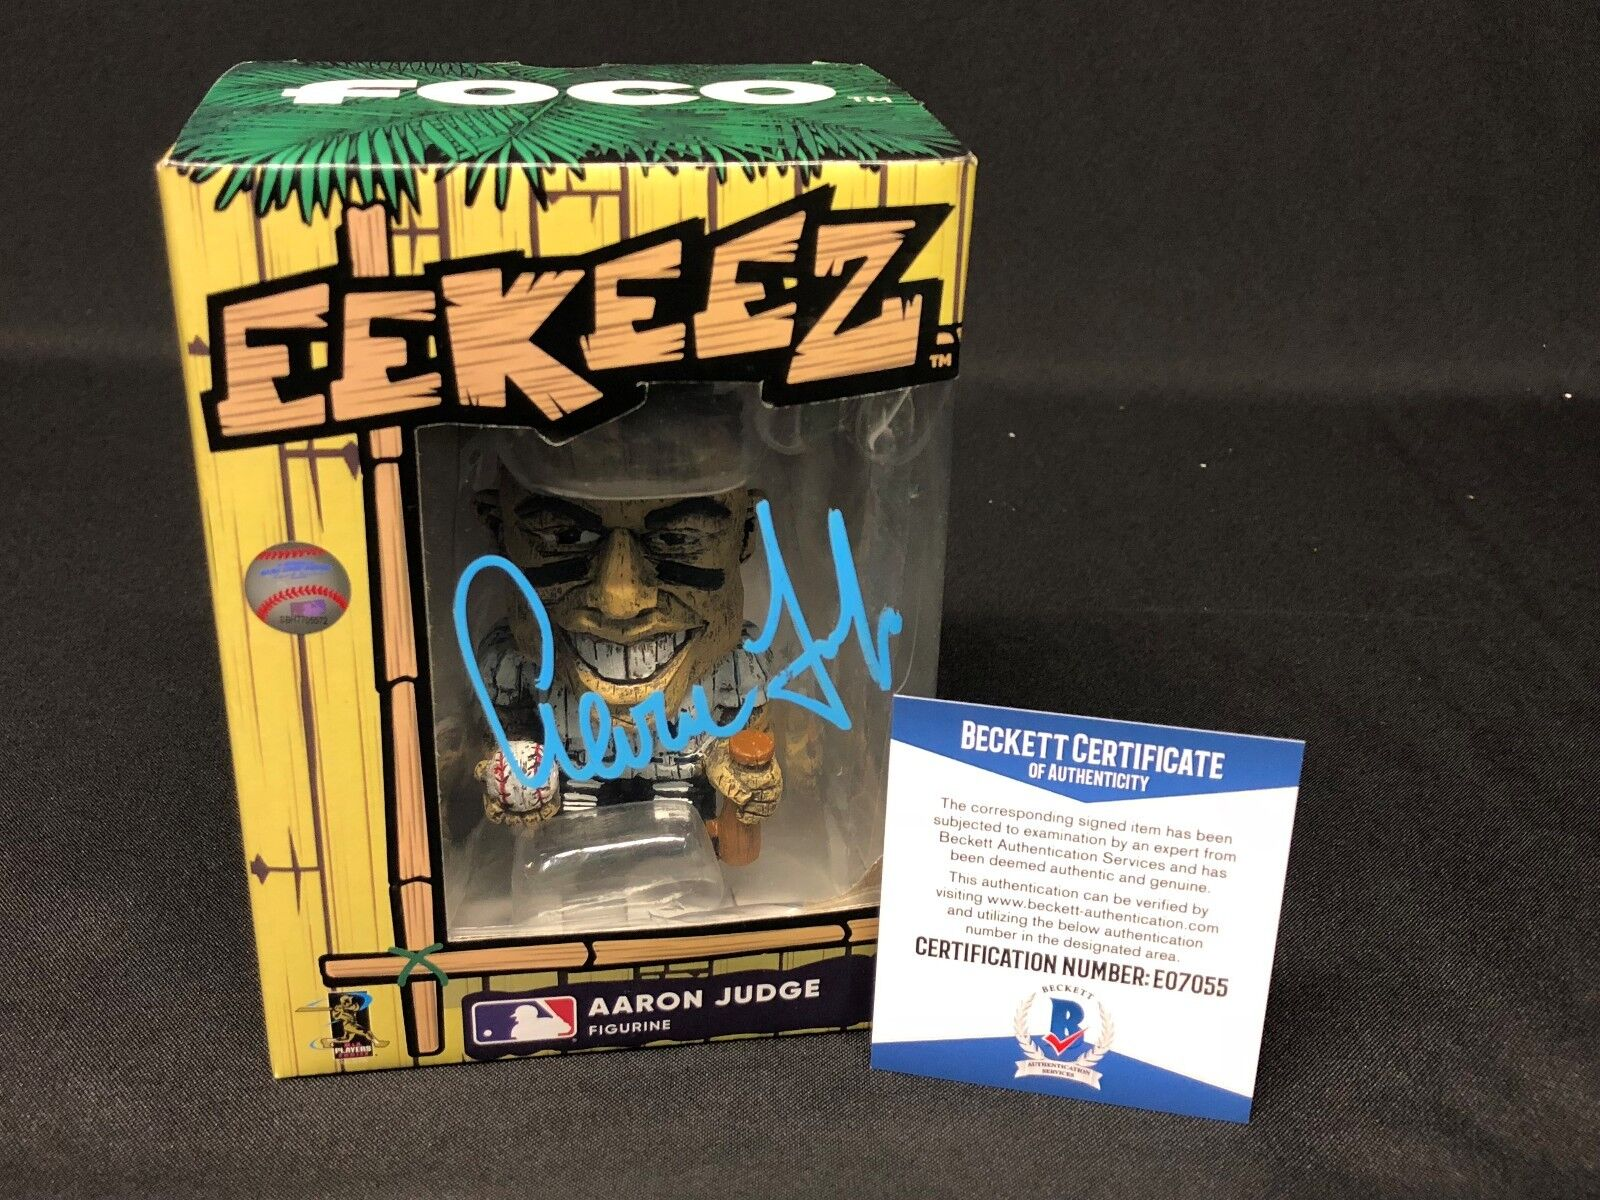 Aaron Judge Signed *New York Yankees Tiki Foco *Eekeez Baseball Figure bas 07055